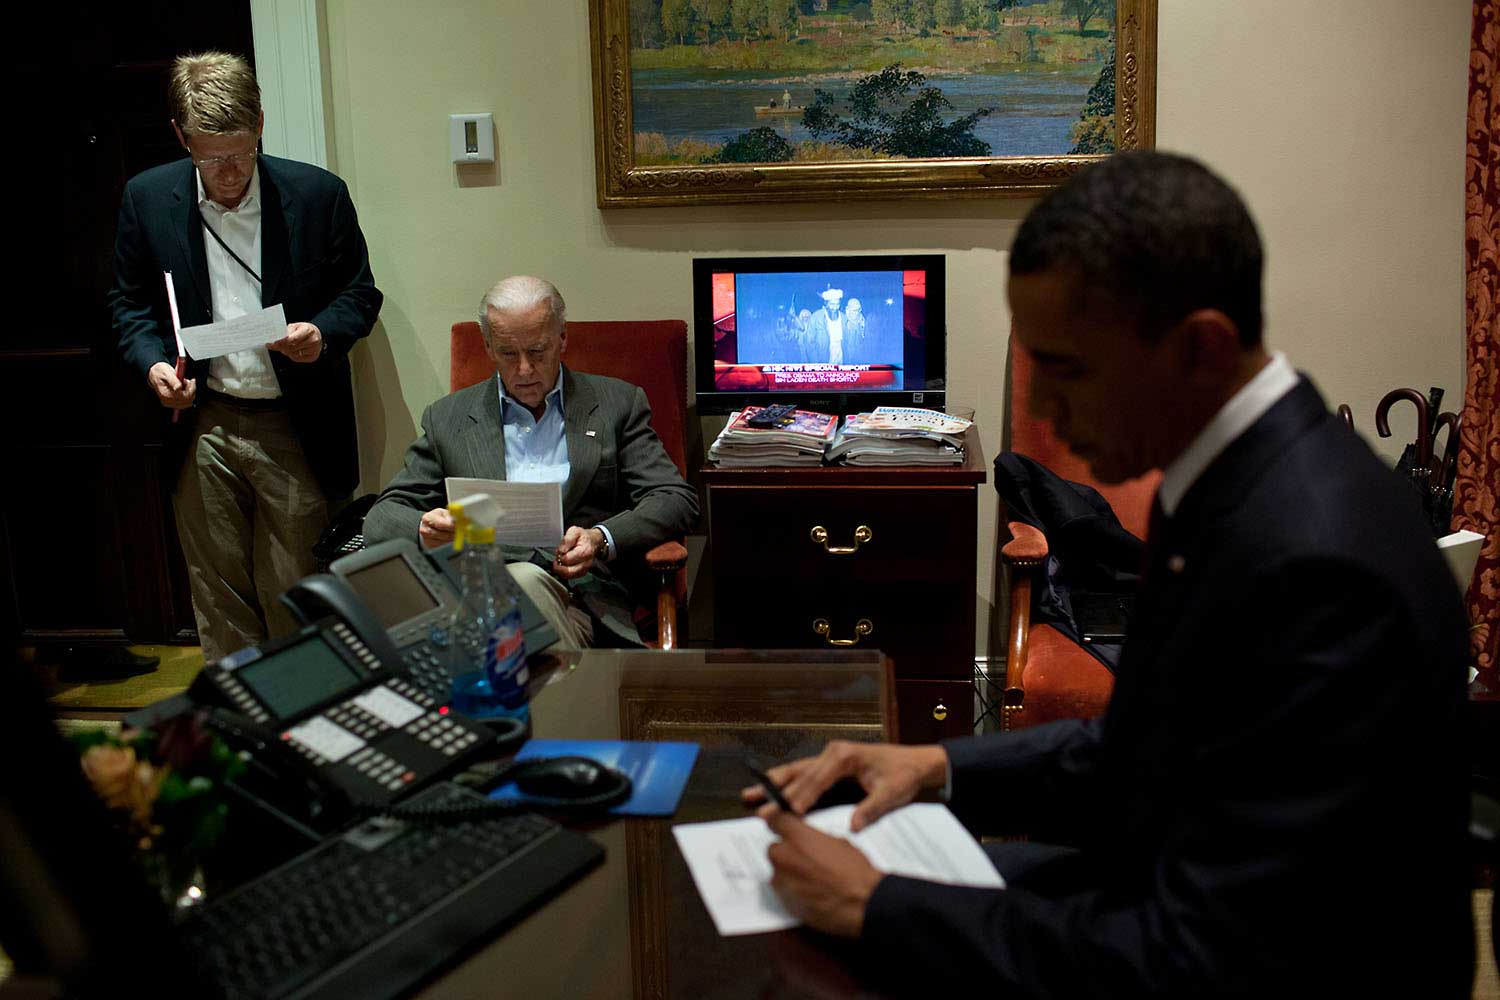 President Barack Obama edits his remarks in the Outer Oval Office prior to making a televised statement detailing the mission against Osama bin Laden, May 1, 2011. Vice President Biden, Press Secretary Jay Carney and are also pictured.